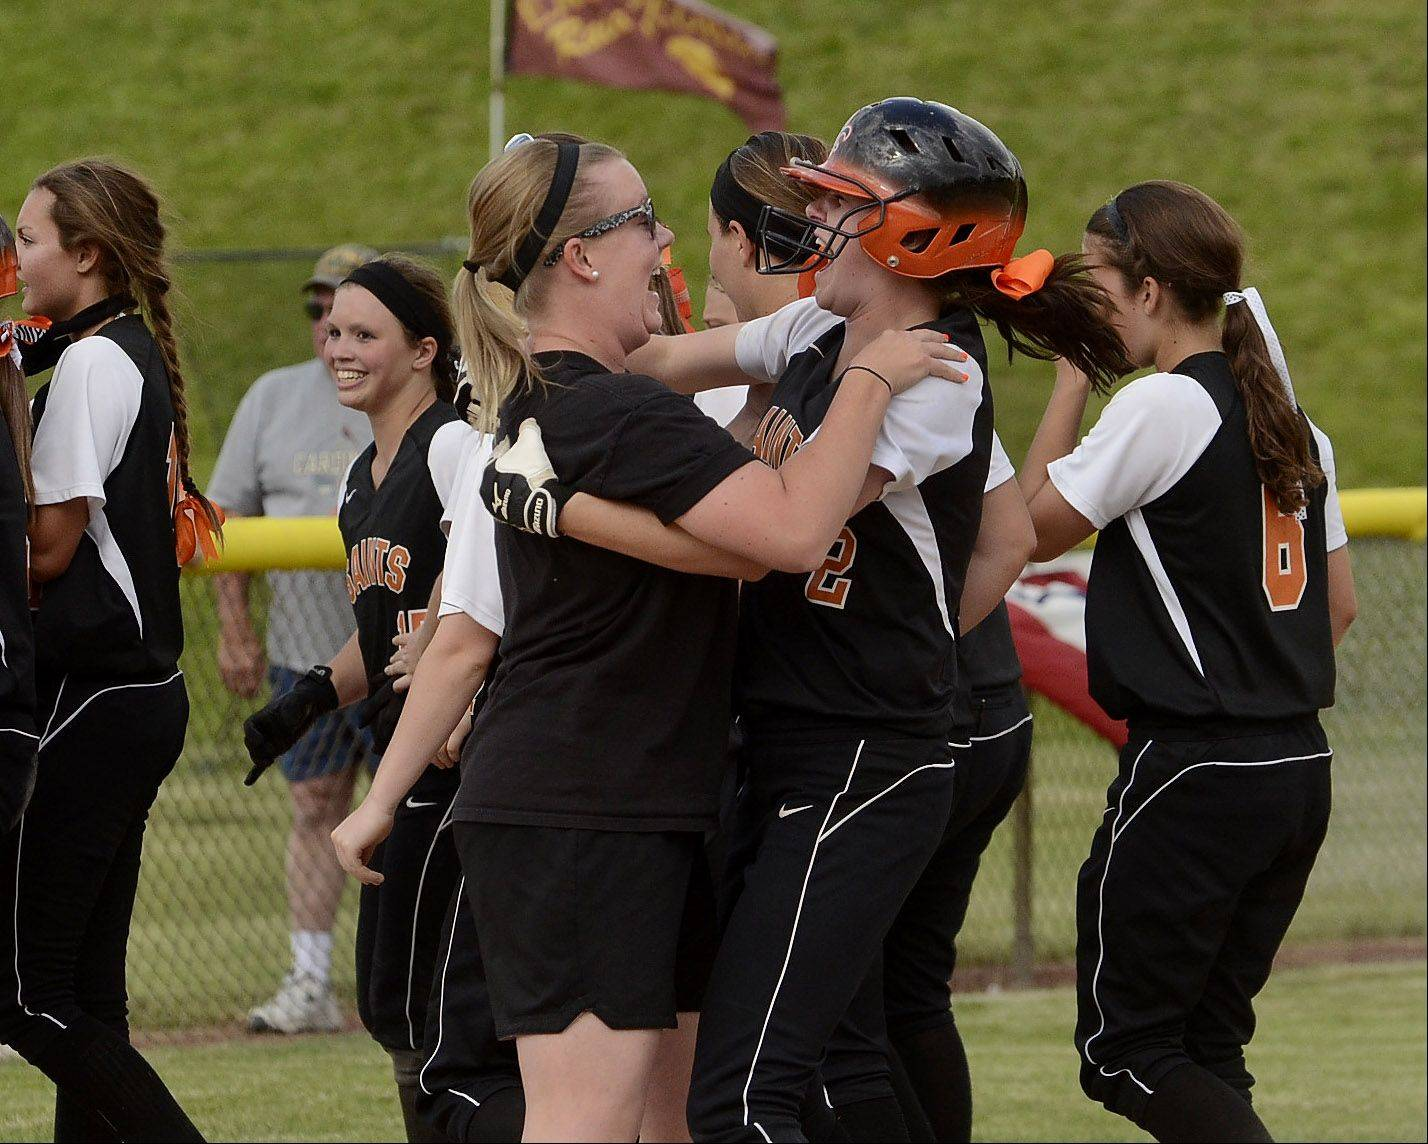 St. Charles East assistant coach Sarah Seward, left, embraces Olivia Lorenzini, after her two-run game winning double in the bottom of the 7th inning.